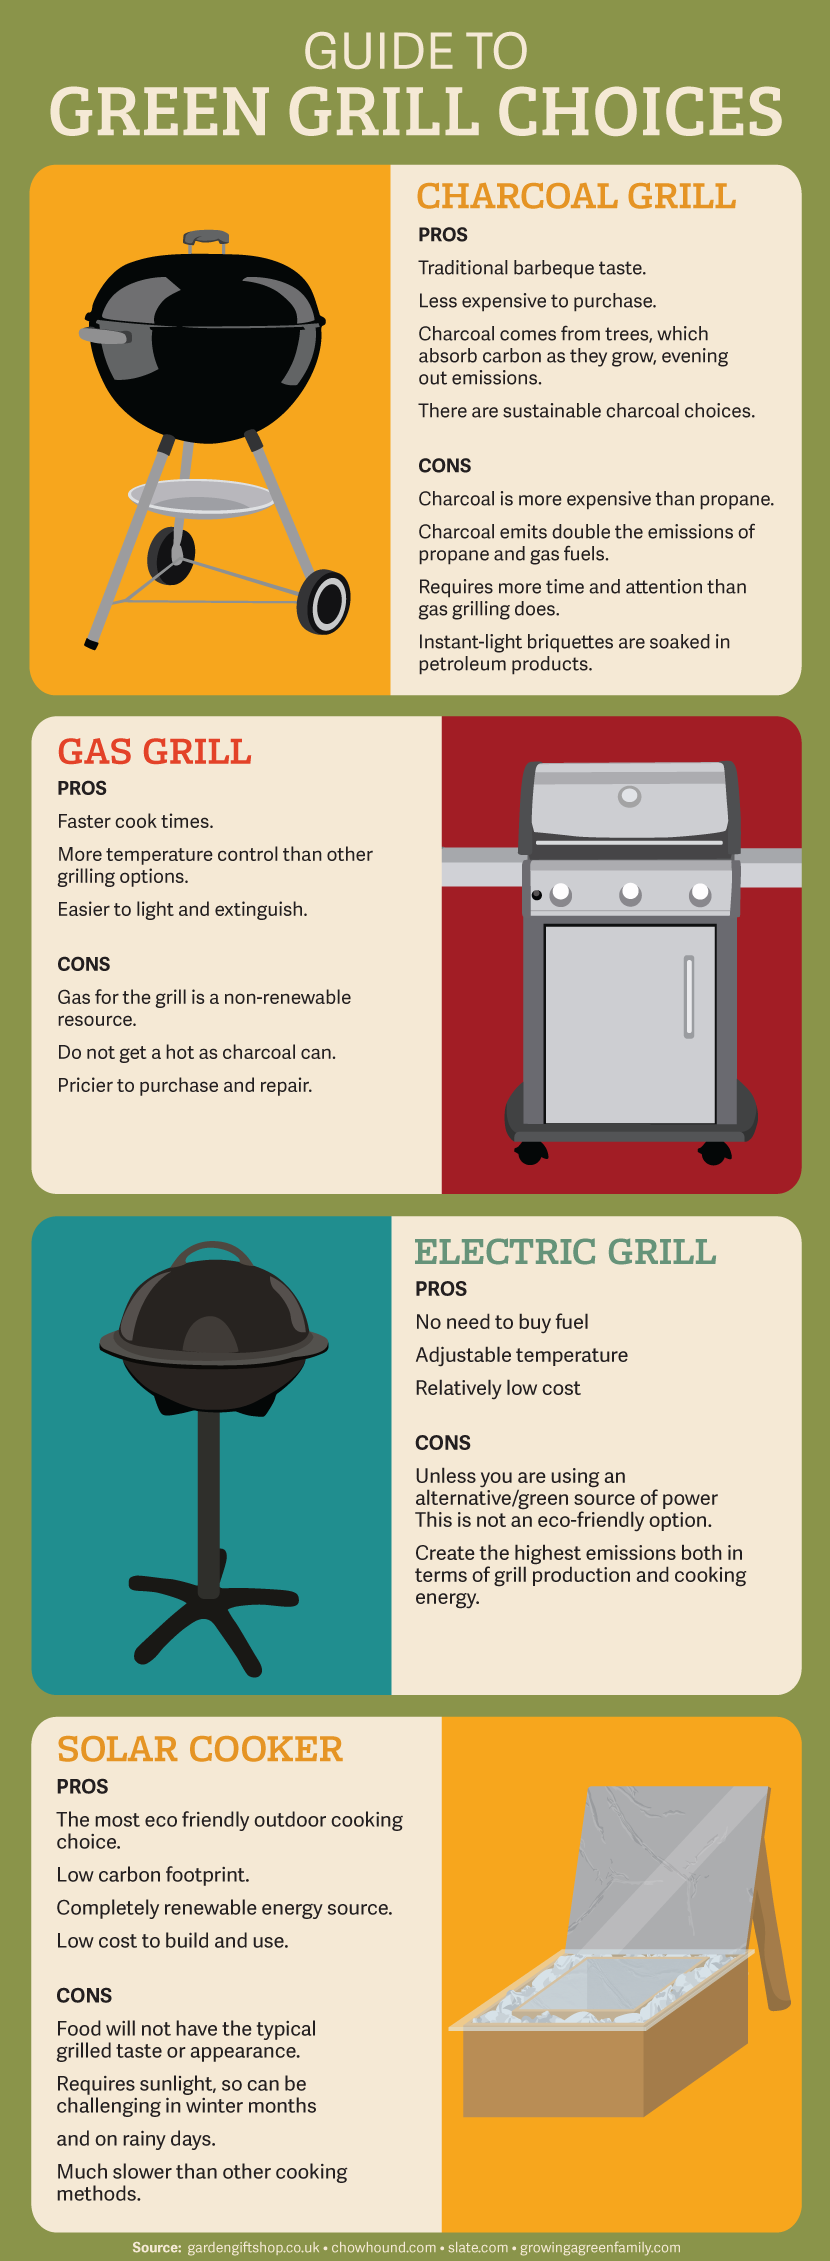 4th of July Grilling Tips